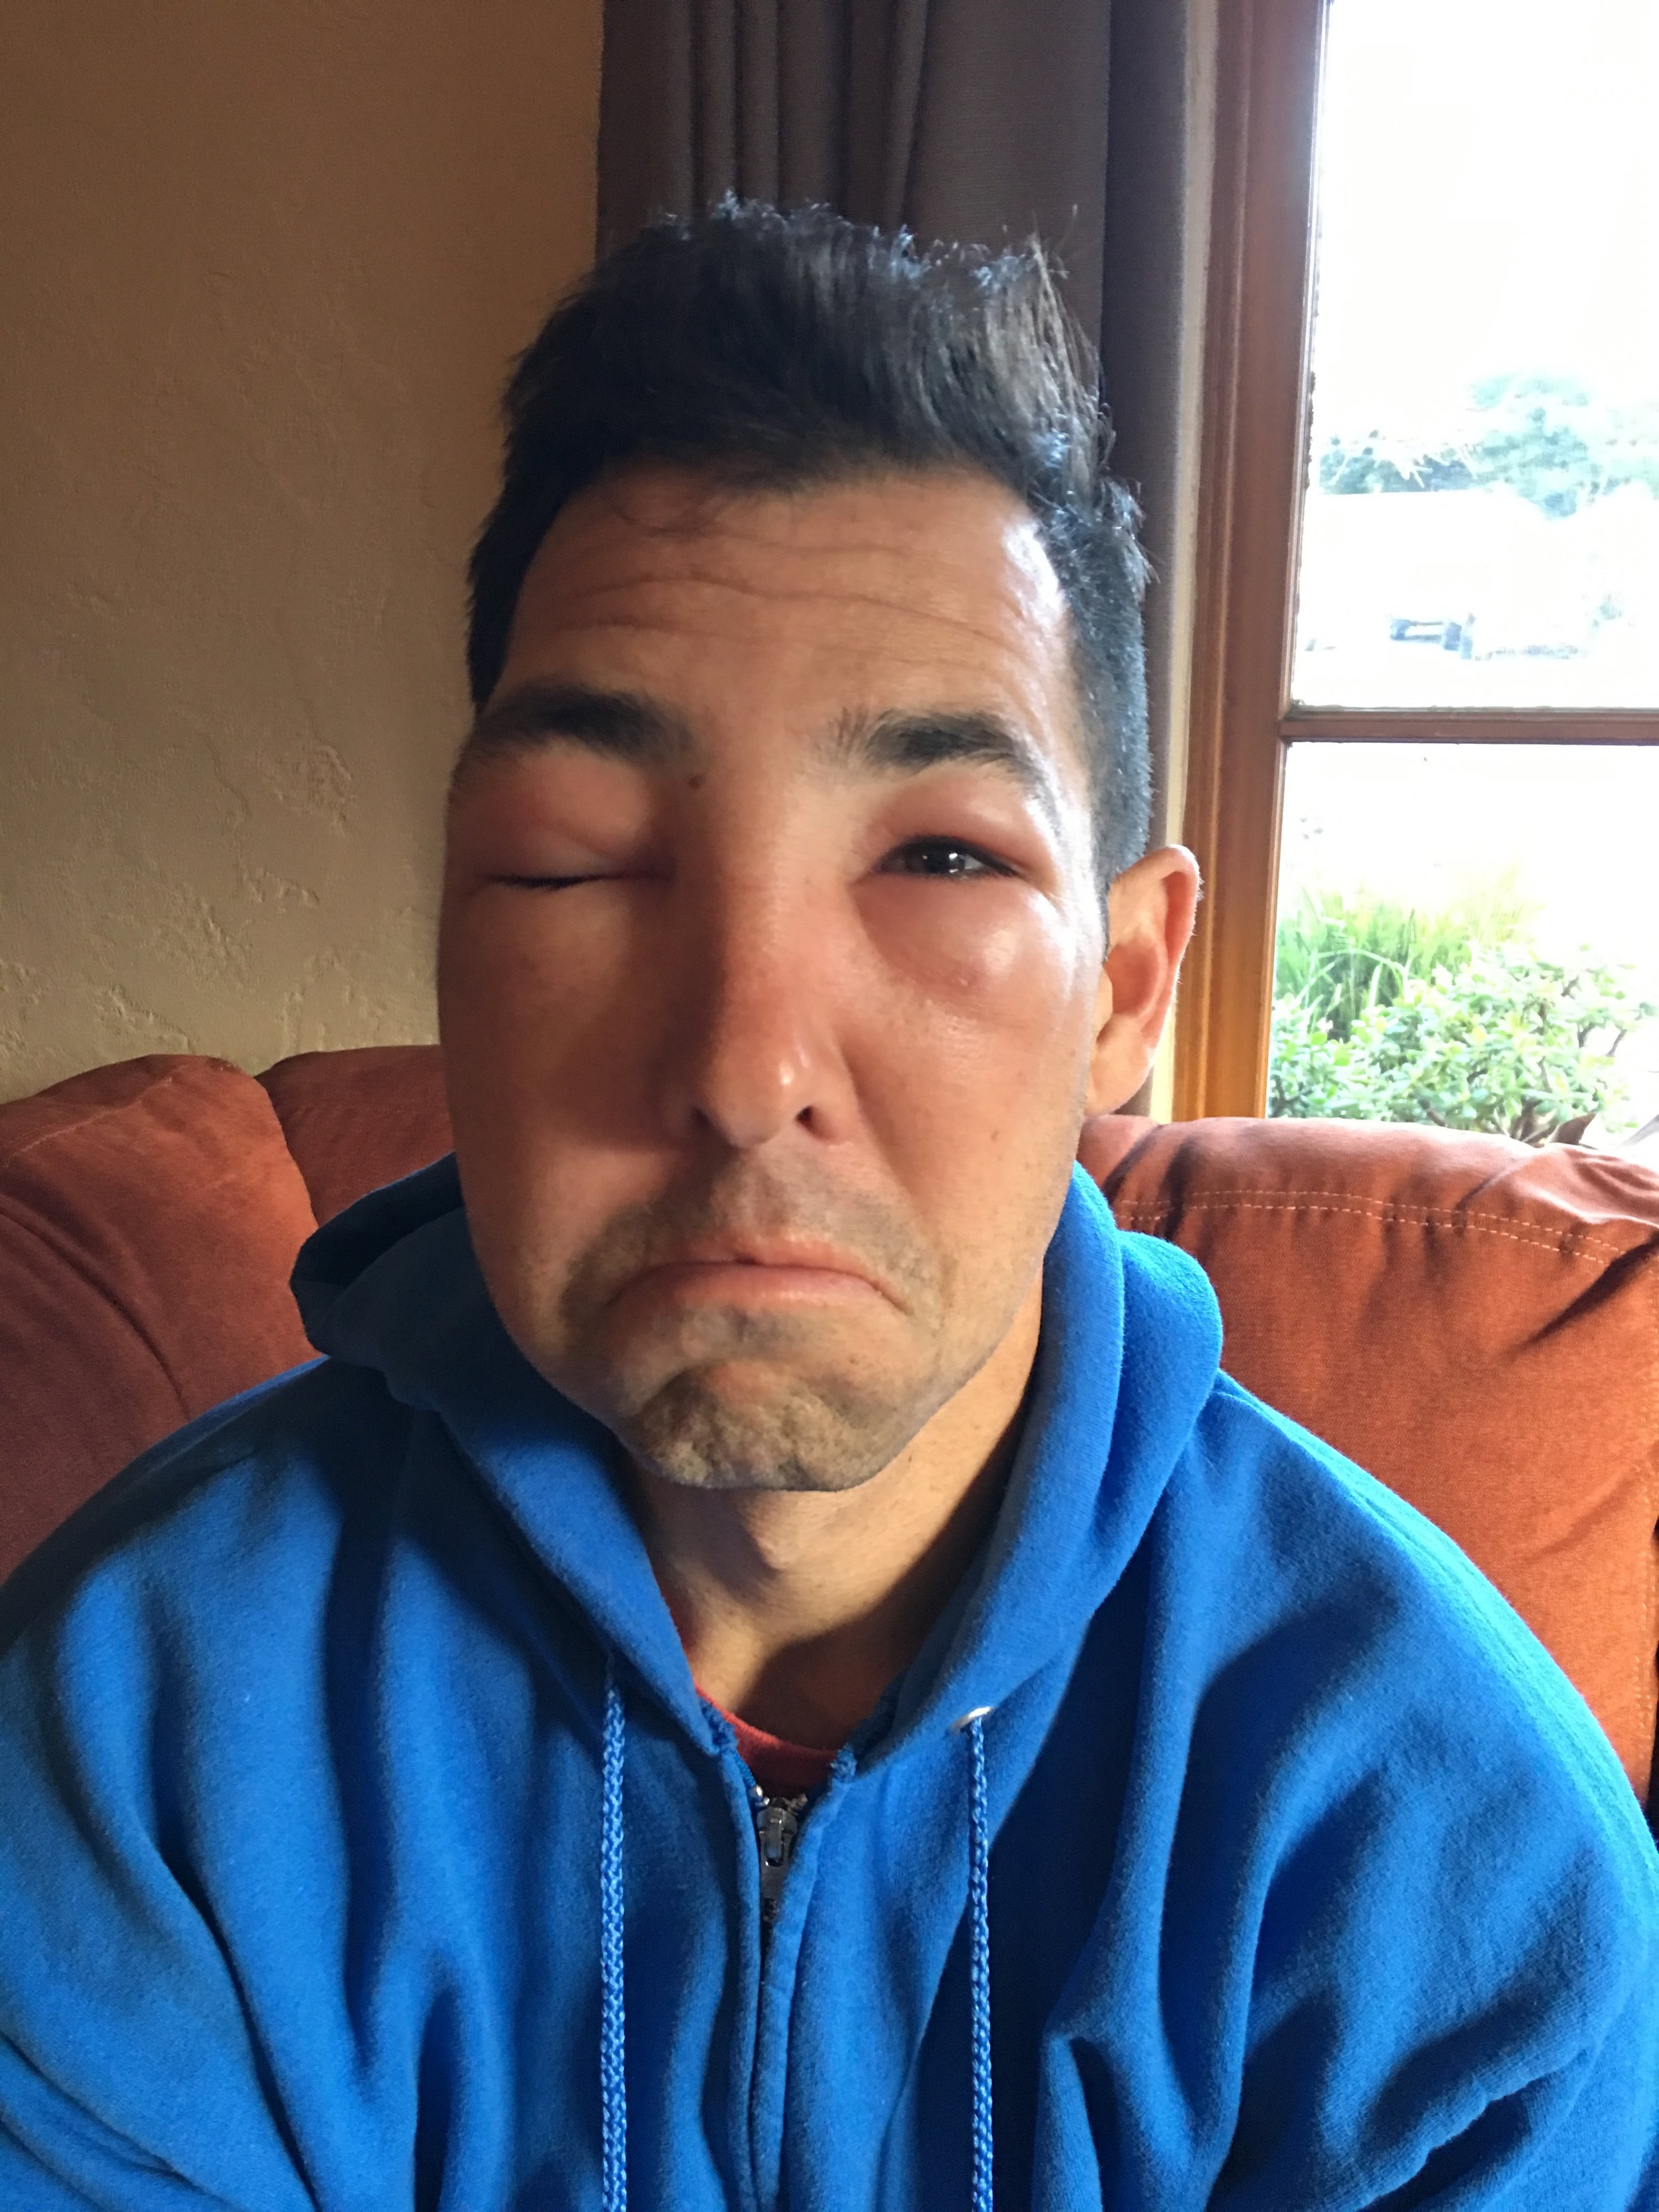 What happens when you are allergic to a bee sting, and you get stung. Hope you feel better soon Rob.